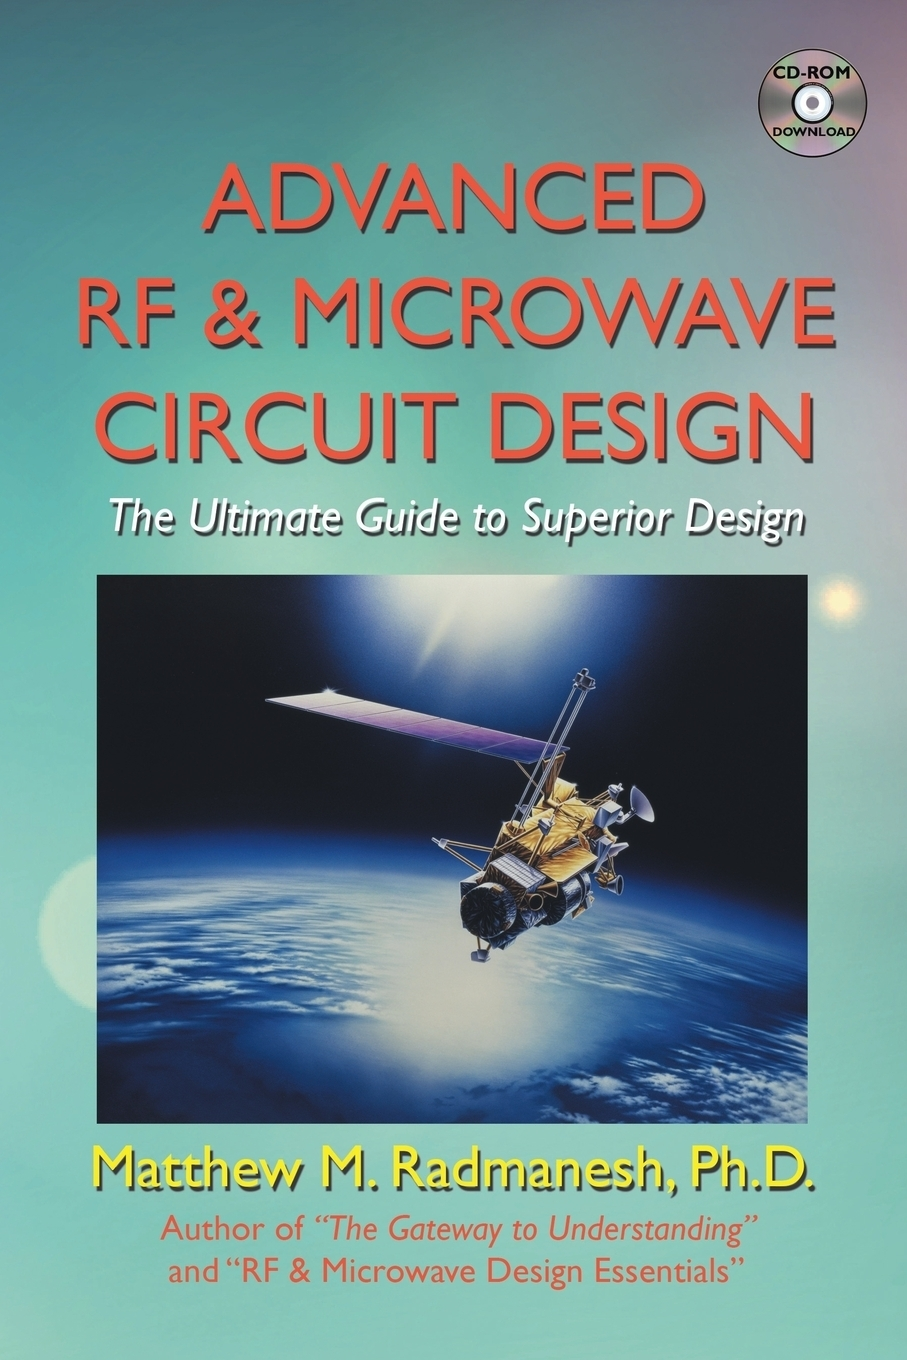 лучшая цена Matthew M. Radmanesh Ph.D. Advanced Rf & Microwave Circuit Design (Updated & Modernized Edition - June 2018). The Ultimate Guide to Superior Design